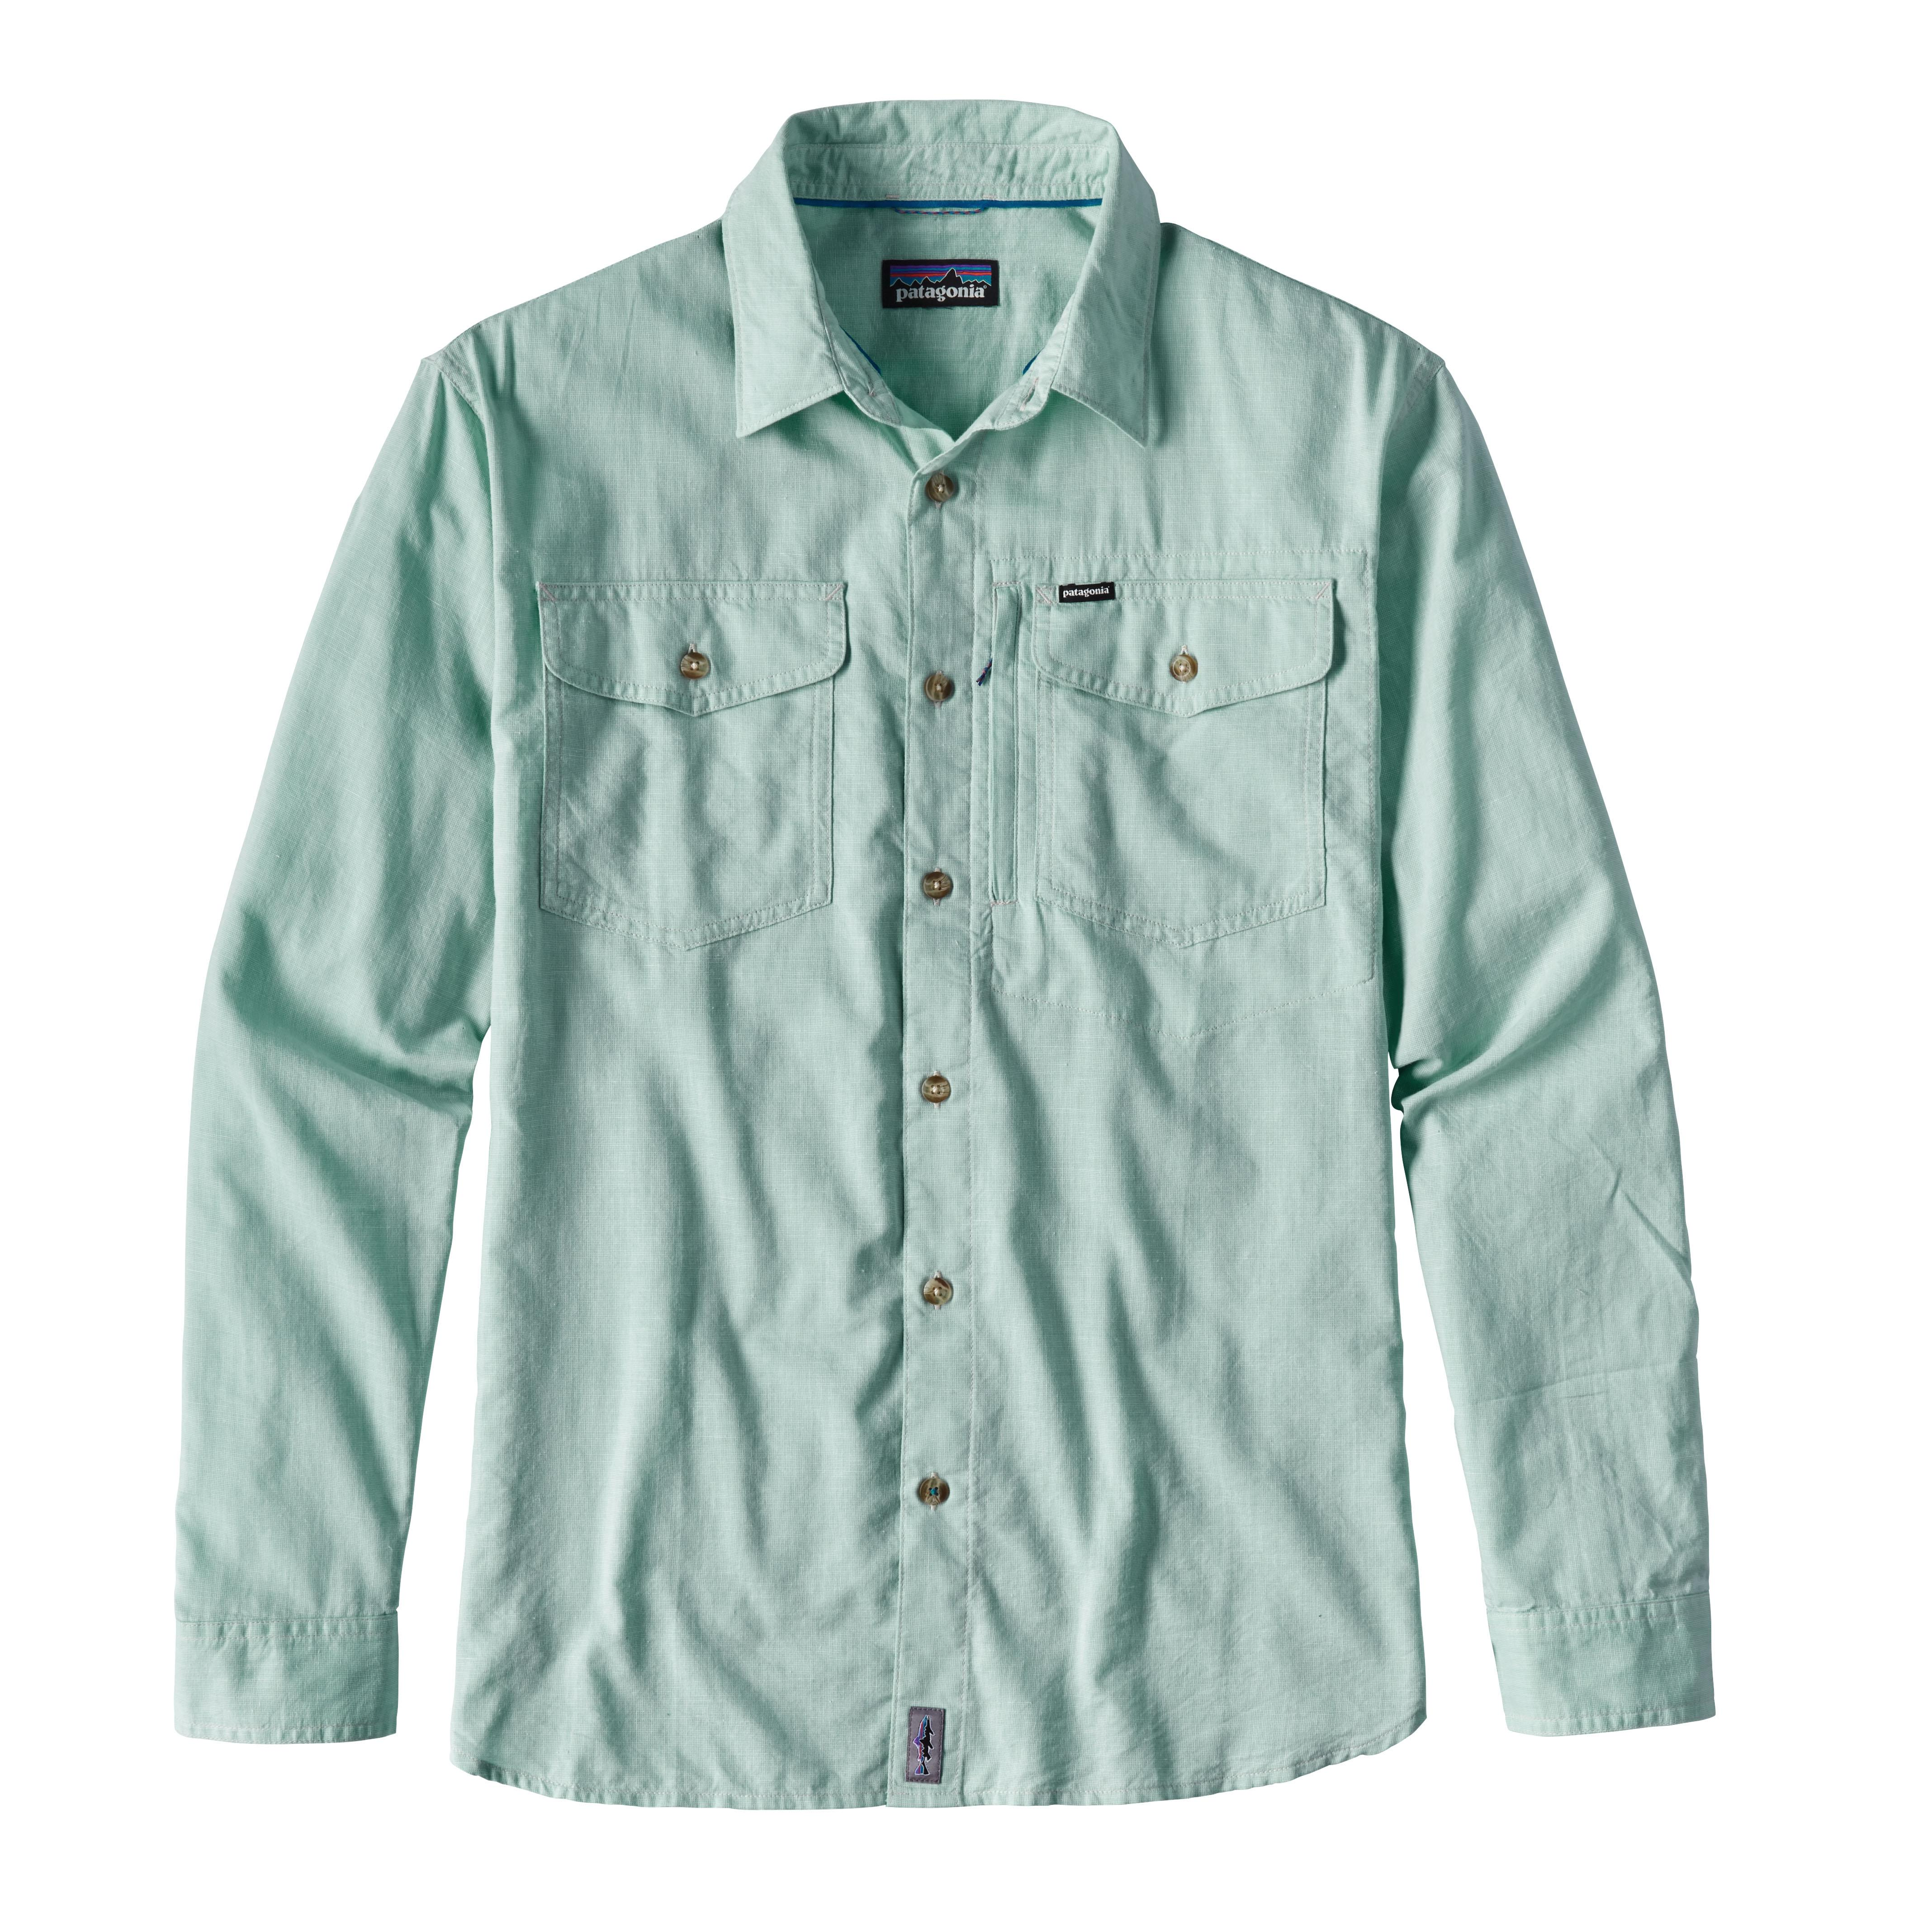 Patagonia Men's Cayo Largo L/S Shirt MRFG_GREEN